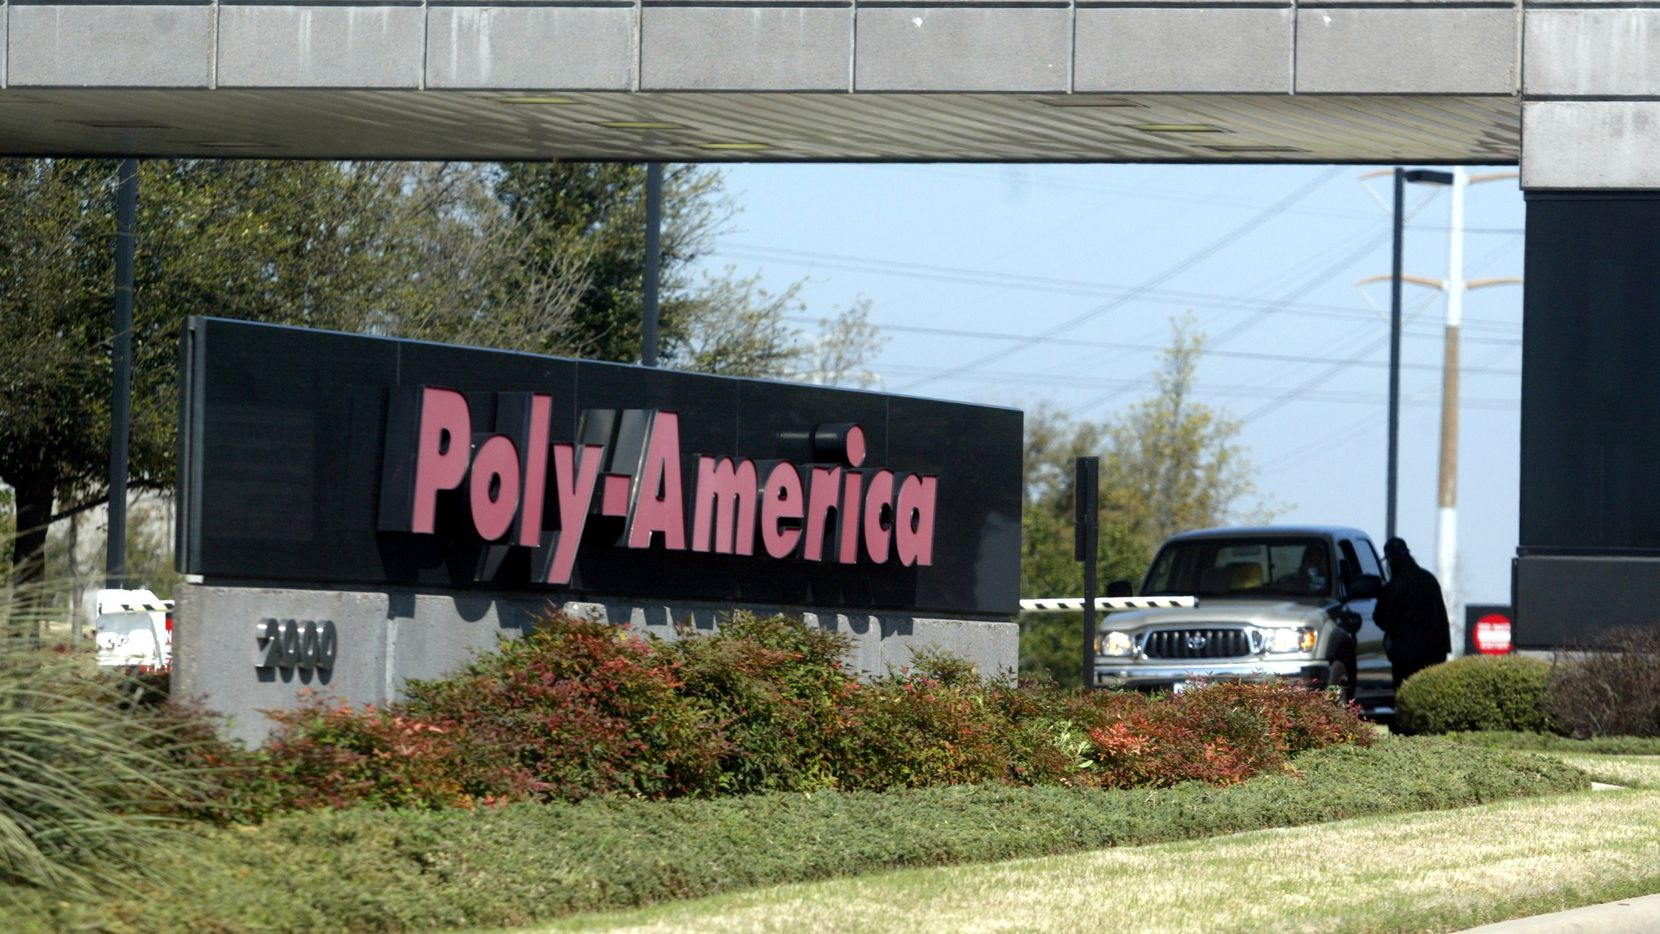 Poly-America has 10 buildings totaling more than 1 million square feet at its 37-acre Grand Prairie headquarters site at 2000 W. Marshall Drive.